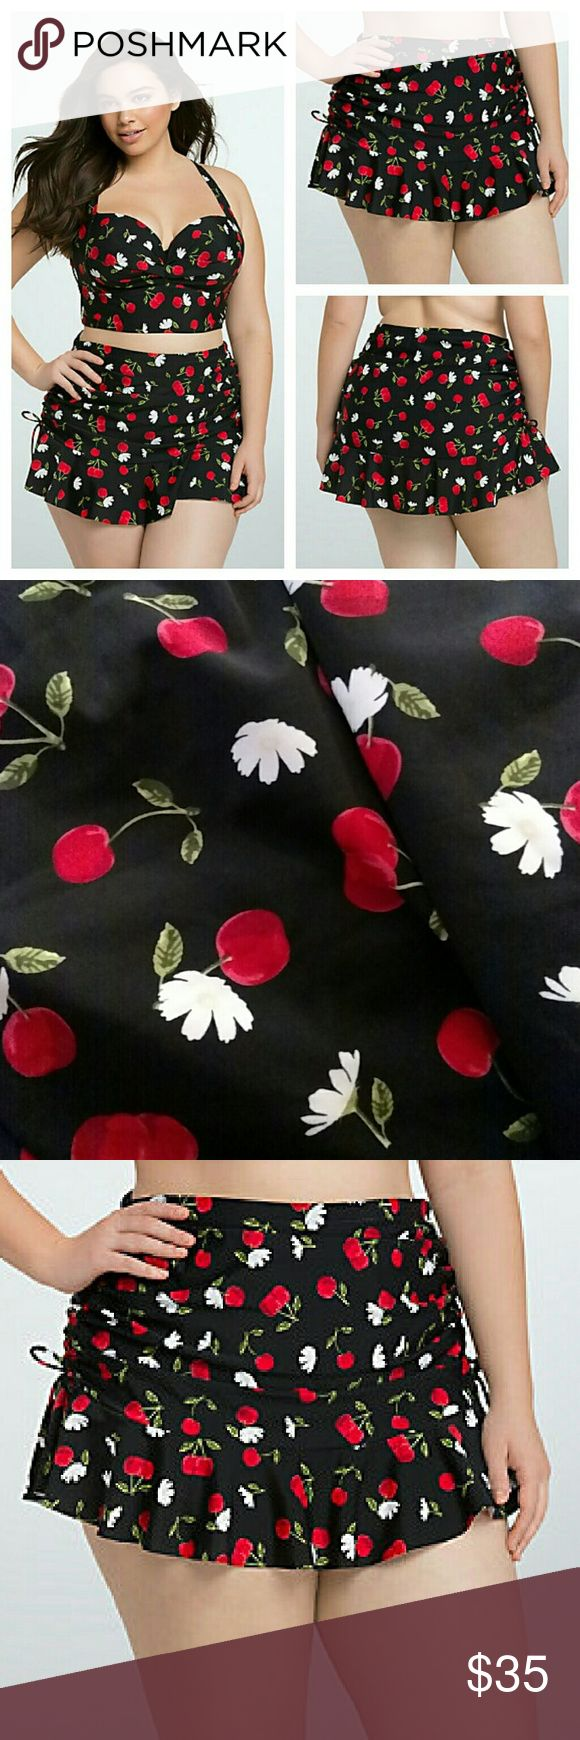 Cherry Ruched High Waist Skirt swimsuit bottom **Bottoms only** They do have a bikini under the skirt  This stretchy-sheeny black swim bottom flaunts a retro cherry and floral print. With side cinch ties than you can adjust (depending on how much you wanna show) the high waist style also has ruching that smooths over any problem areas. Both the brief and skirt are lined in power mesh to contour your figure.  ?  Tummy control Nylon/spandex Hand wash cold, line dry Imported  plus size swim…